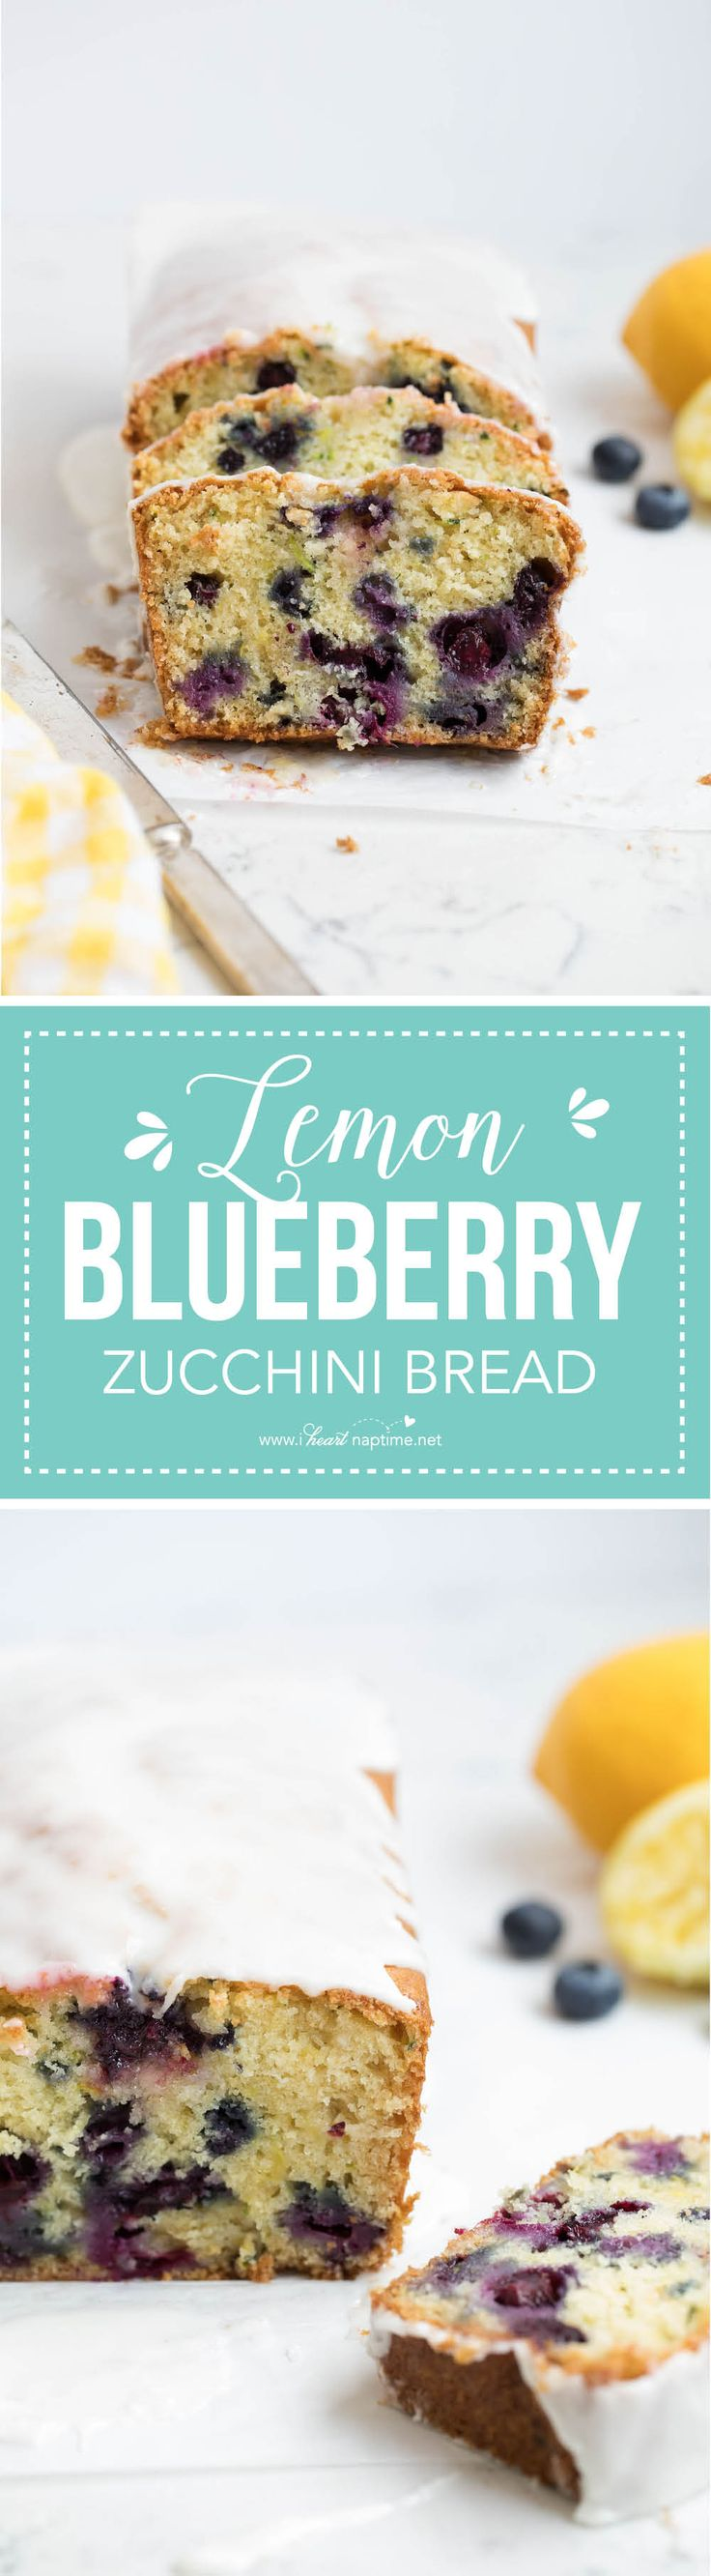 Lemon blueberry zucchini bread -this zucchini bread recipe is the best I've ever had! So moist and full of flavor!